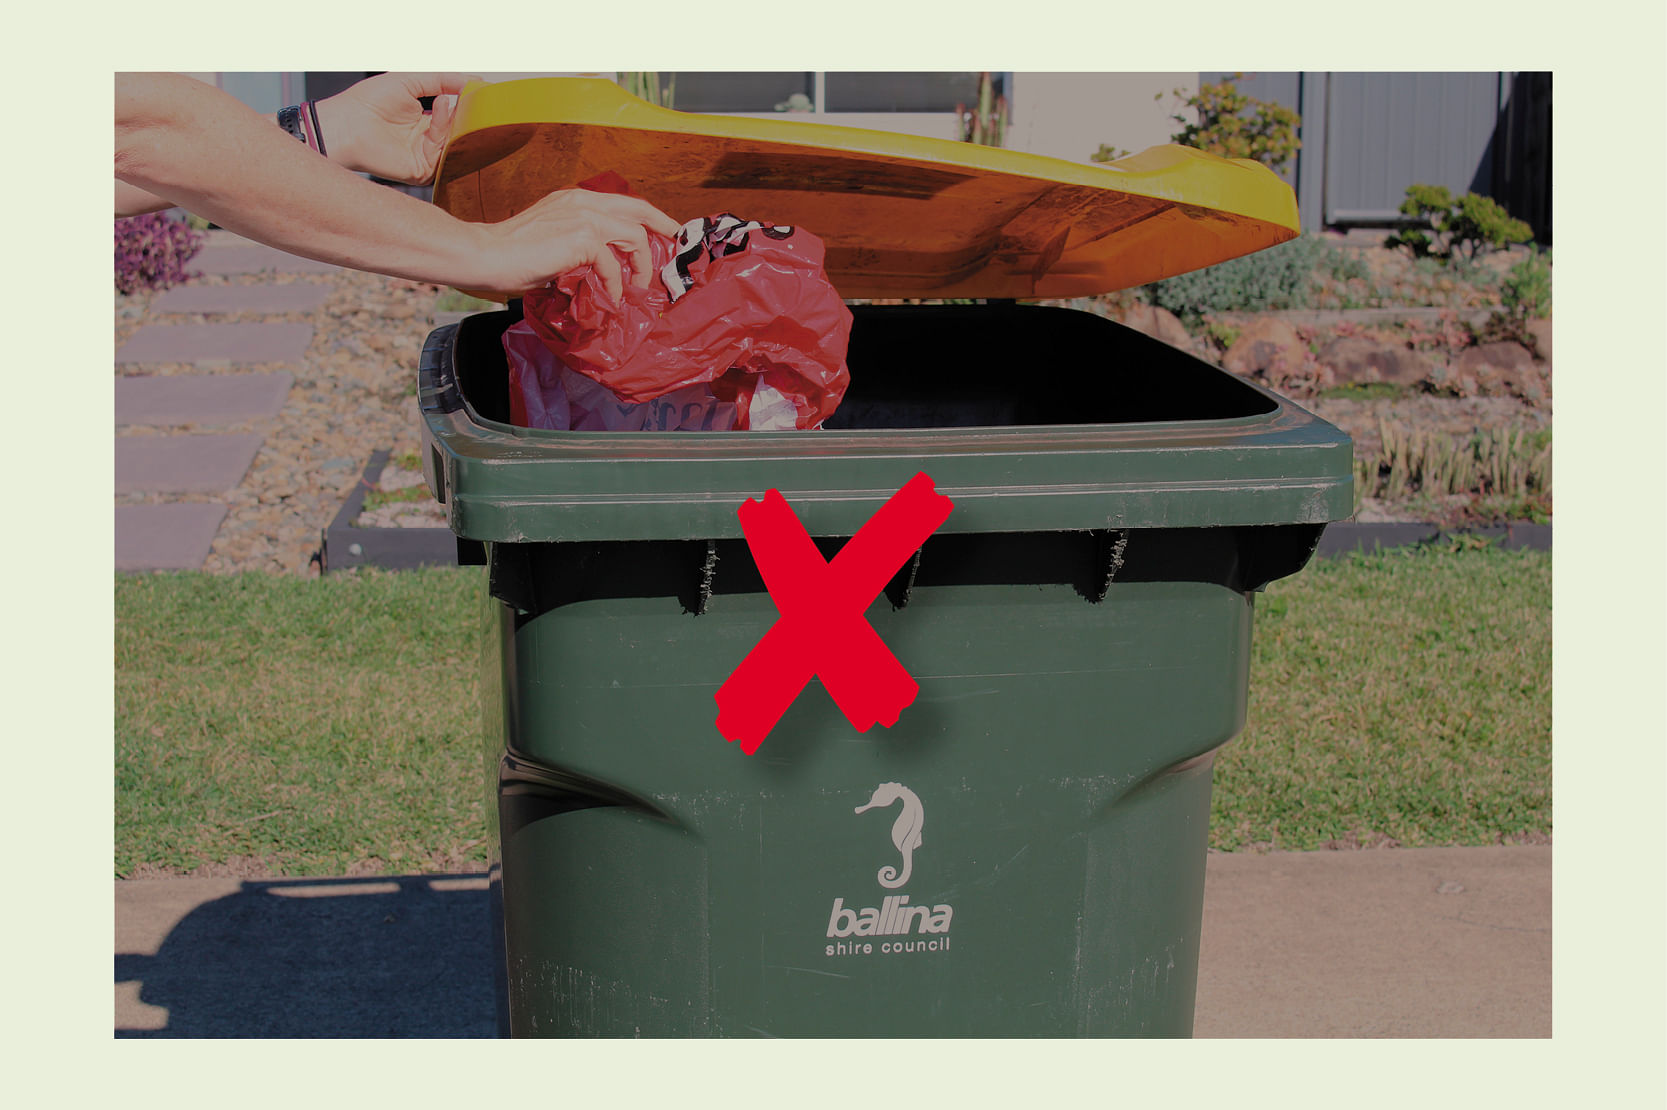 Image of soft plastic being placed in yellow bin